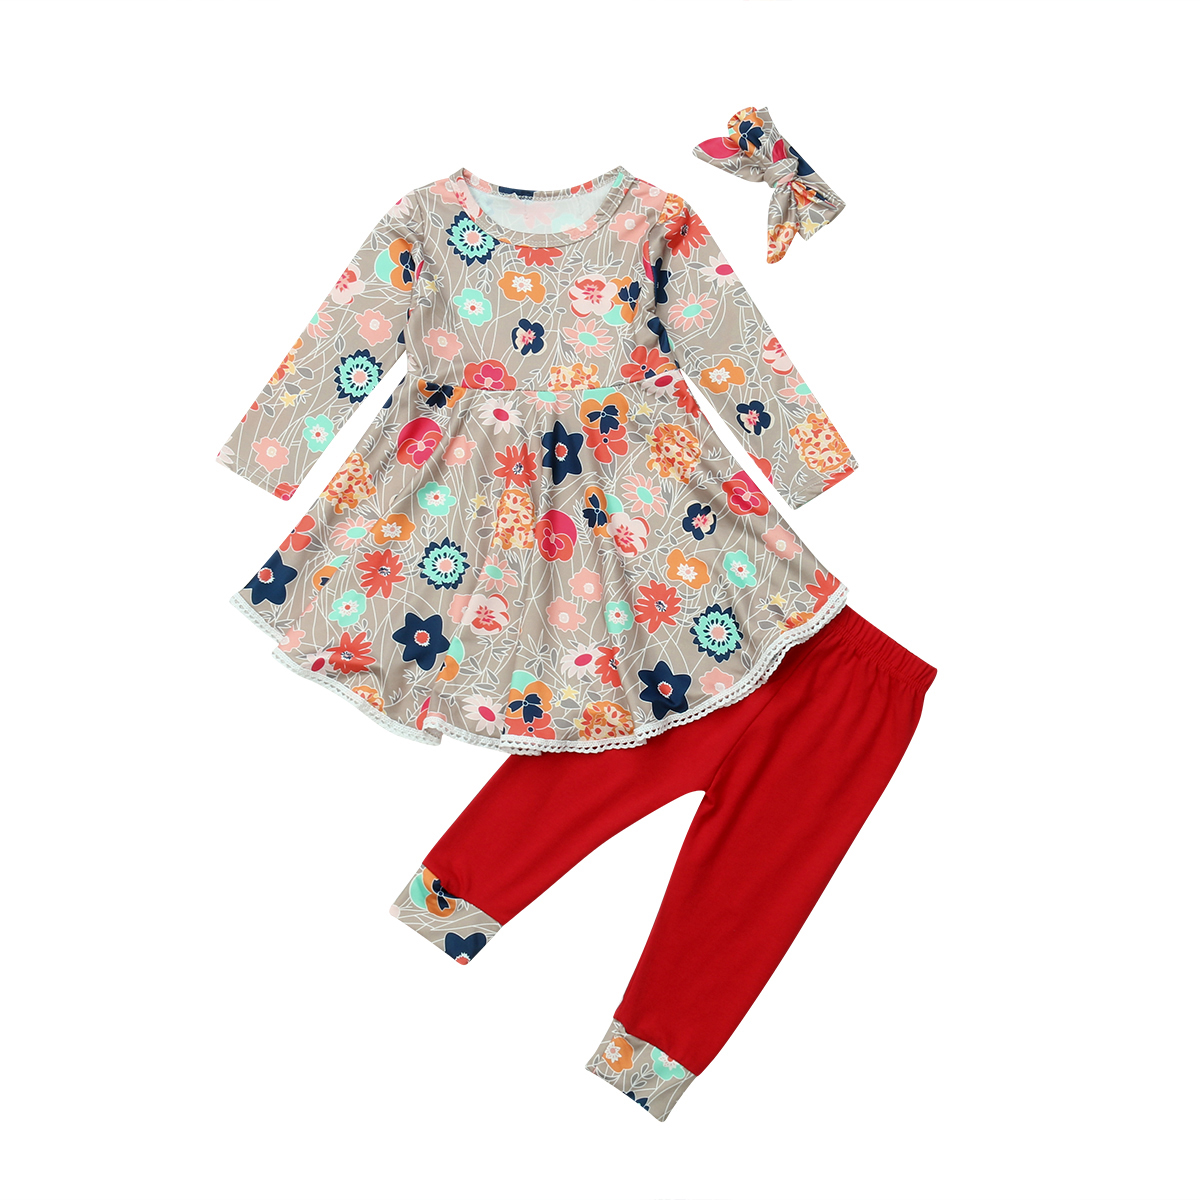 e32f7383c7b16 Detail Feedback Questions about Christmas Toddler Kids Baby Girl Clothing  Set Flower Children Clothes Long Sleeve Tunic Pants Autumn Spring Outfits  DNOV on ...